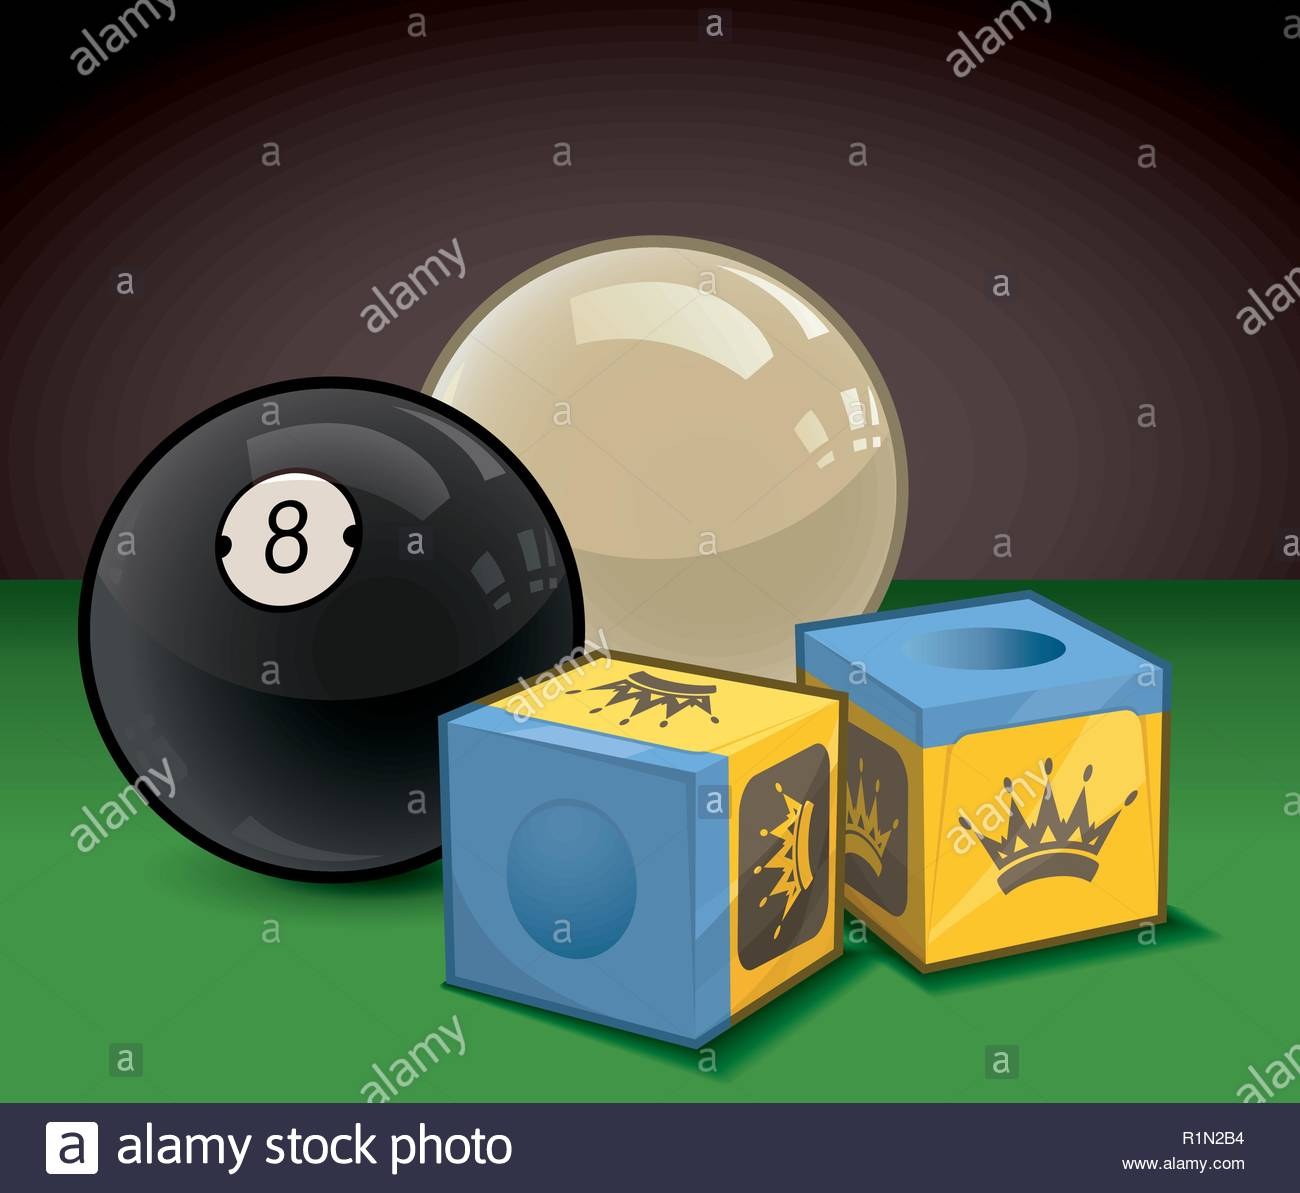 A glossy eight ball and cue ball with blue cue stick chalk on a green felt billiards table - Stock Vector